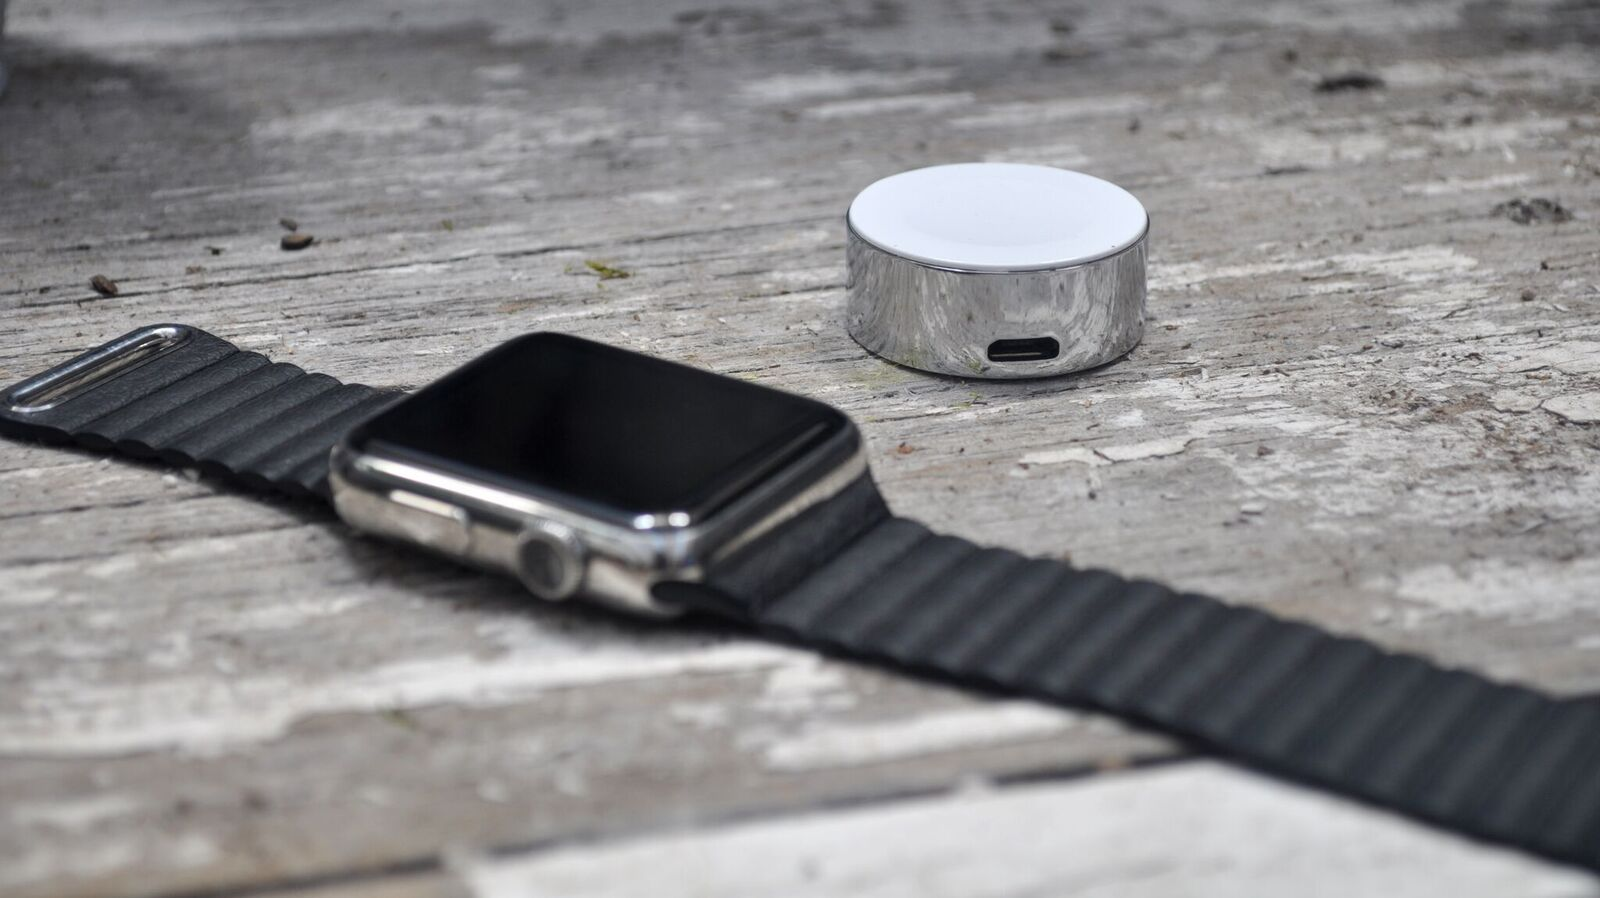 Diskus carregador portatil para o Apple Watch Pedro Topete Apple Blog Portugal